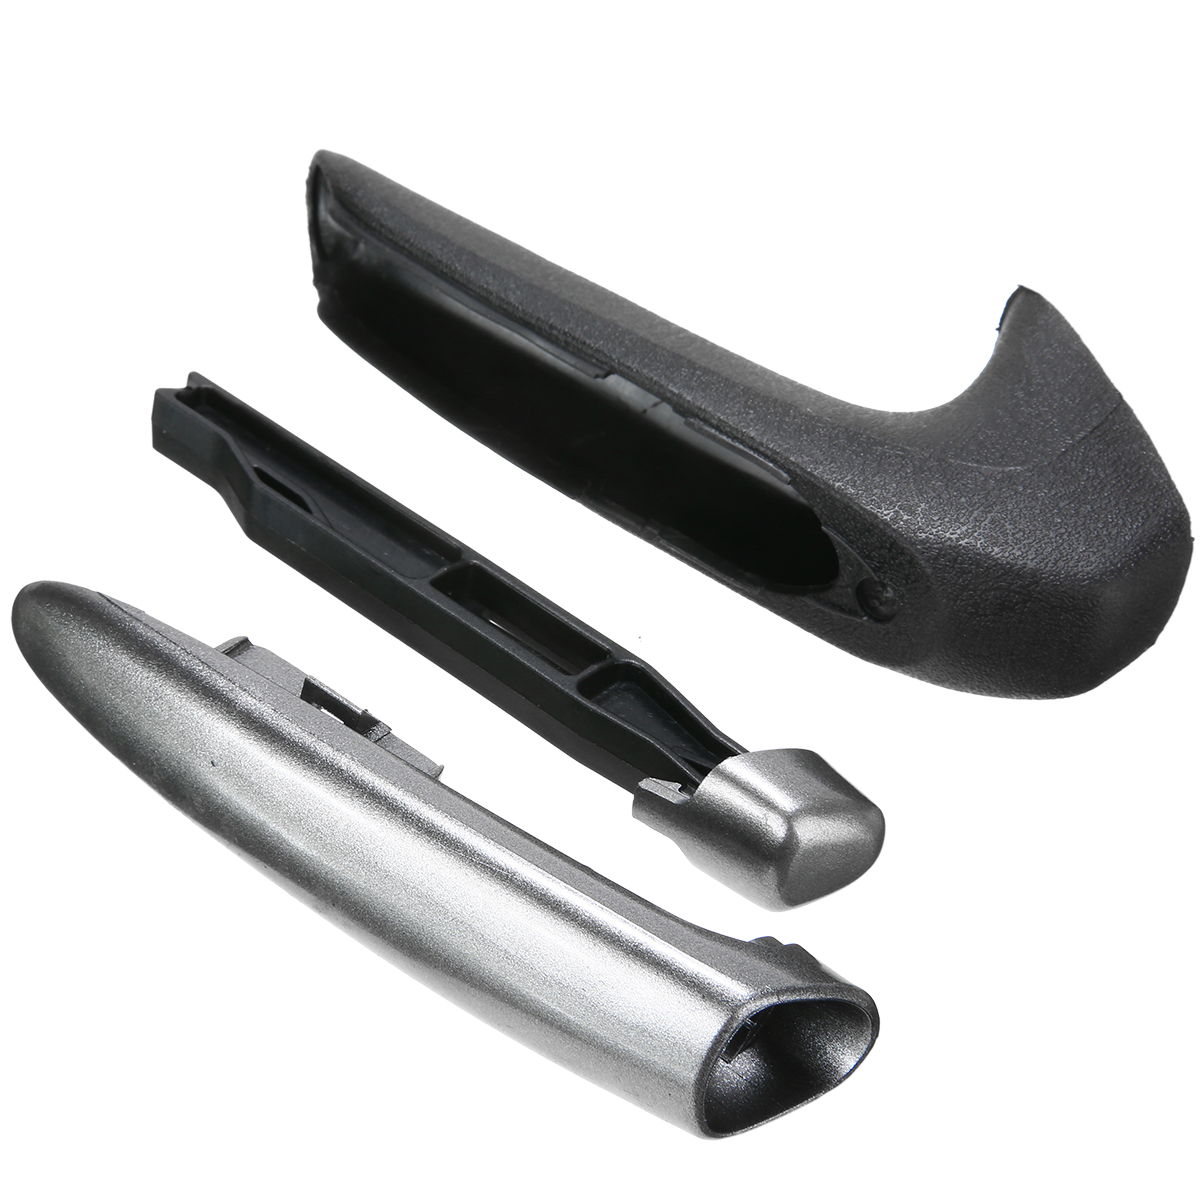 Image 3 - Mayitr 1pc Parking Brake Handle Dedicated Replacement Handle Cover for Honda Civic 06 11 47115 SNA A82ZA/47125 SNA A82ZB-in Handbrake Grips from Automobiles & Motorcycles